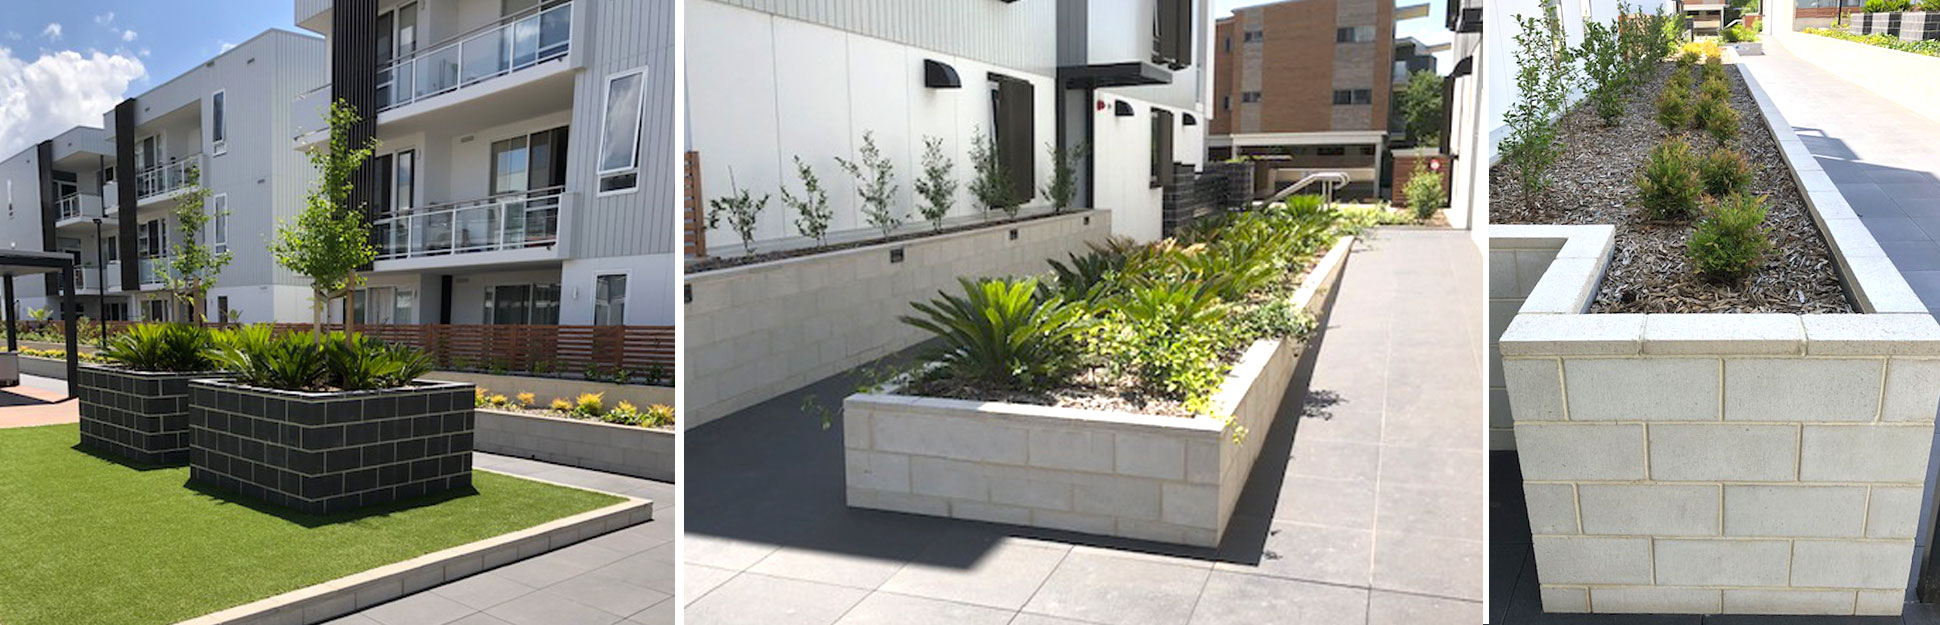 Idalia Apartments Woden ACT concrete block planters